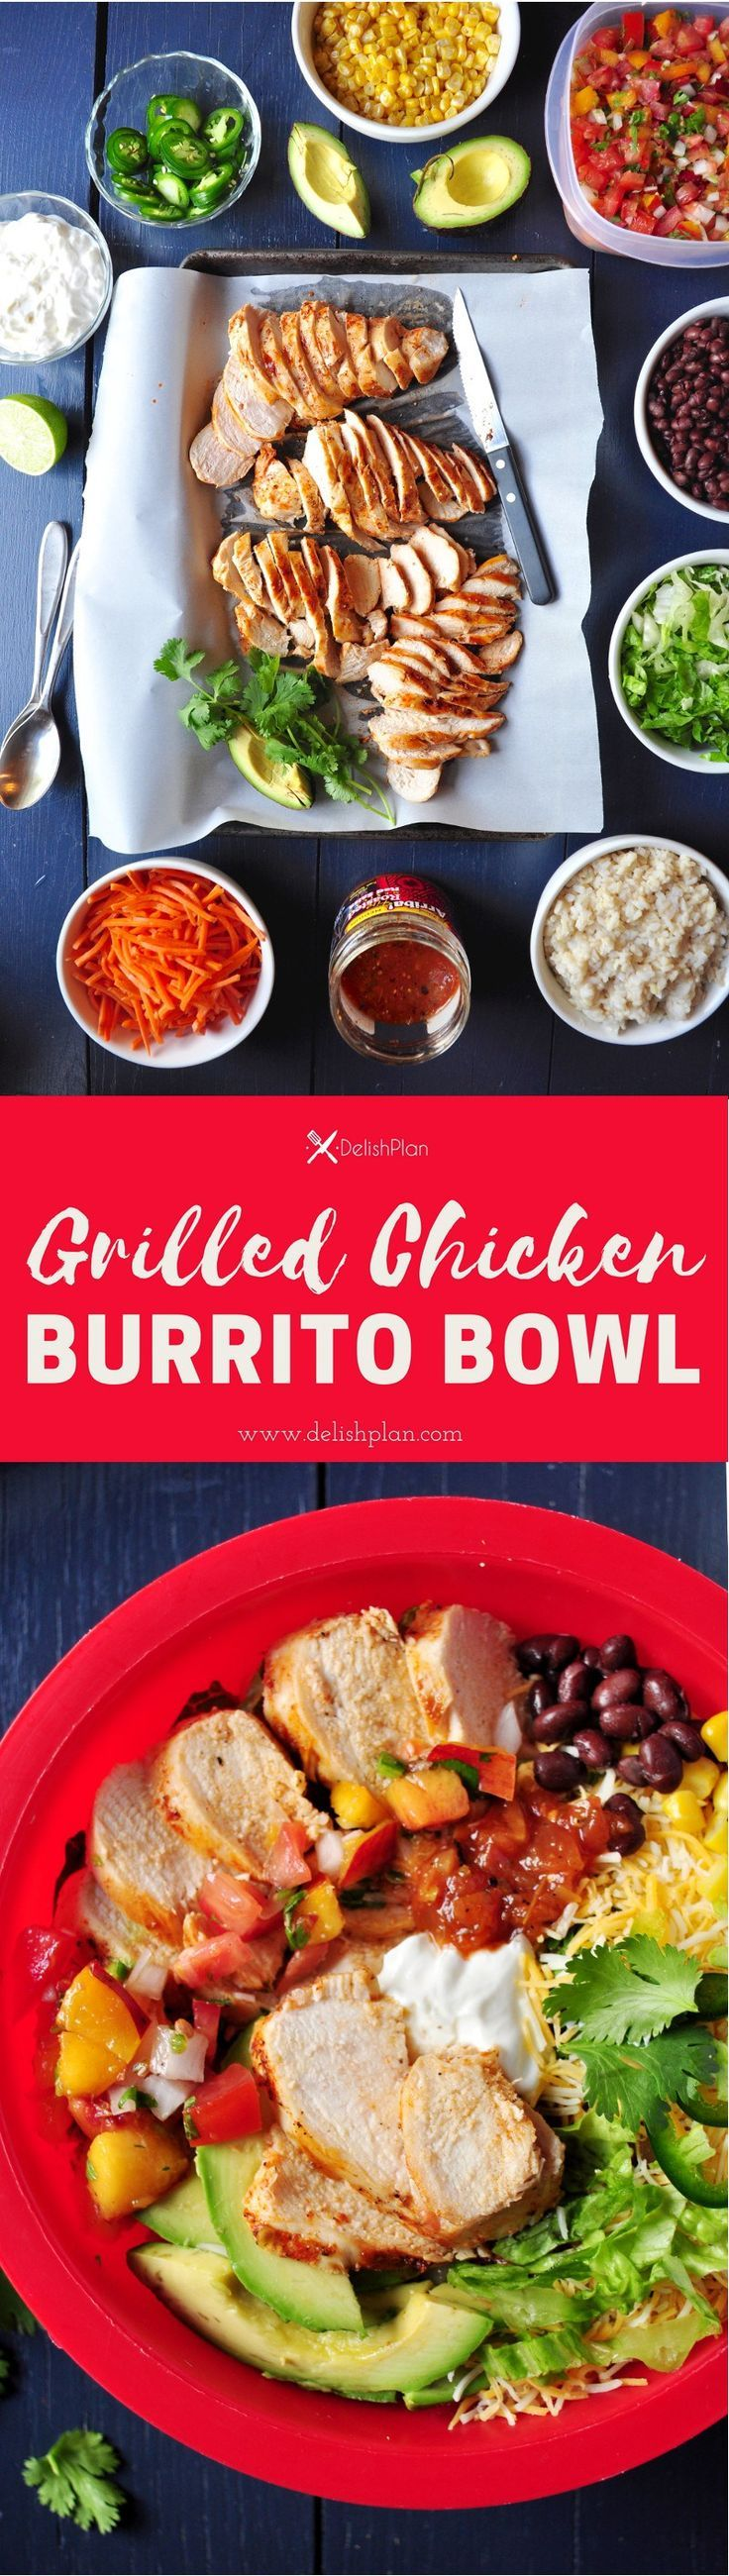 Assemble a healthy and delicious burrito bowl with these perfectly grilled juicy chicken breasts in just 30 minutes. Read more at http://www.delishplan.com/grilled-chicken-burrito-bowl/ �